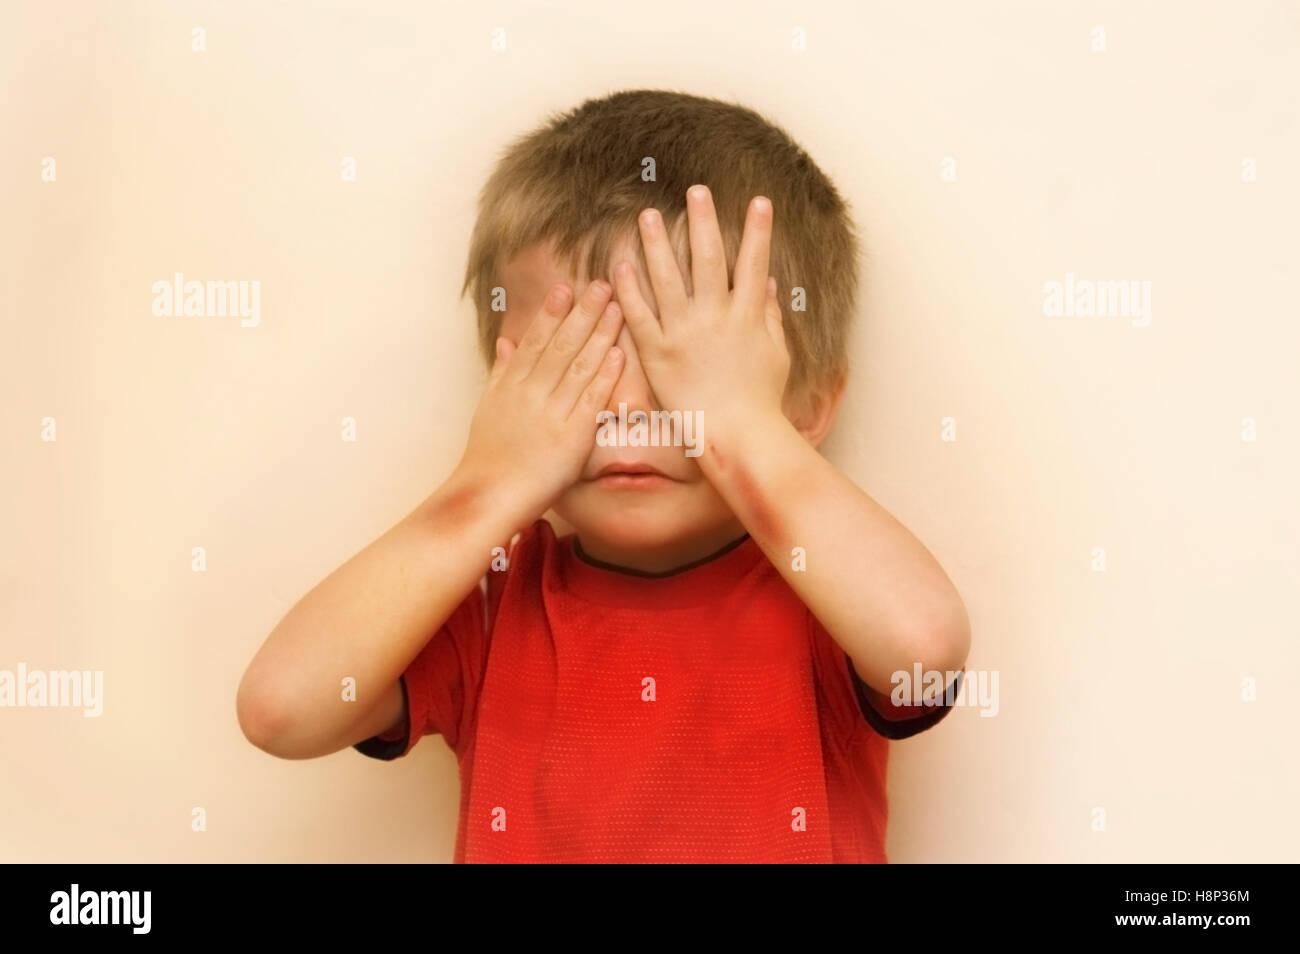 A conceptual image  of an abused child hiding his face.  Digitally enhanced. - Stock Image